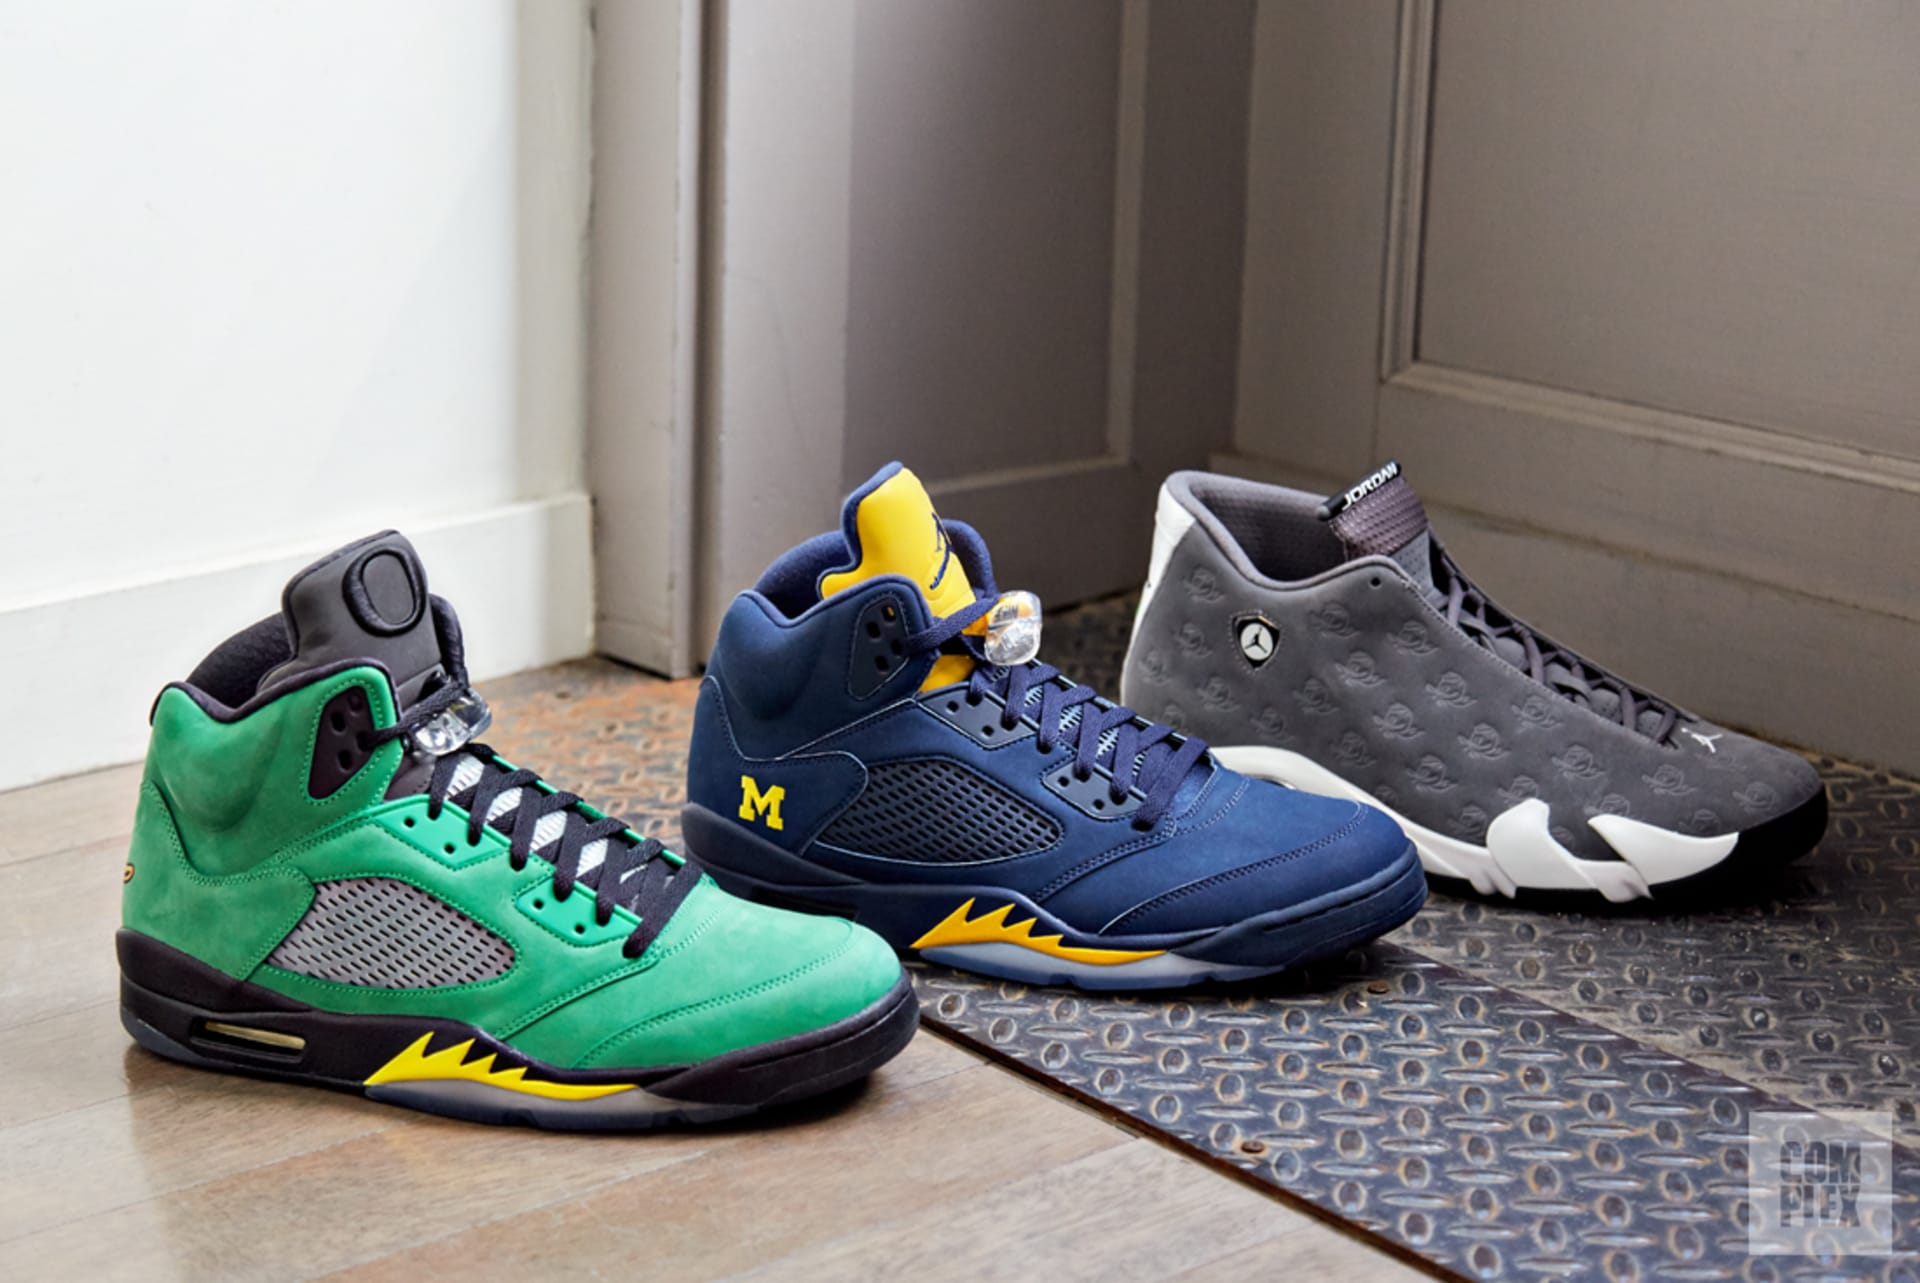 0095a418e29 Air Jordan PEs made for the University of Oregon and Michigan. Sneakers  courtesy of Stadium Goods. Image via Complex Original David Cabrera